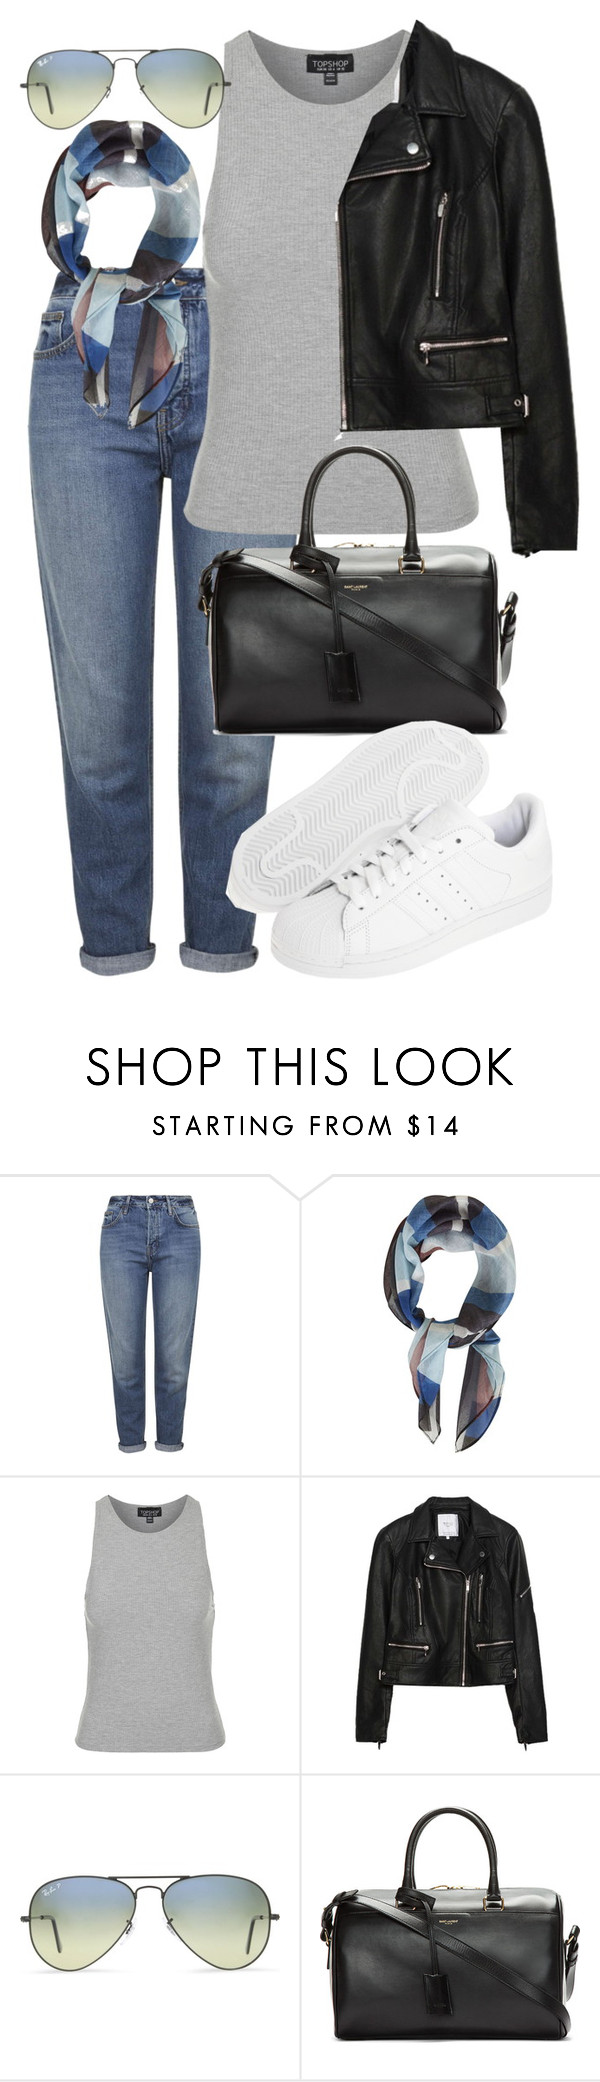 """Untitled #2388"" by oliviaswardrobe ❤ liked on Polyvore featuring Topshop, Zara, Ray-Ban, Yves Saint Laurent, adidas Originals, women's clothing, women, female, woman and misses"